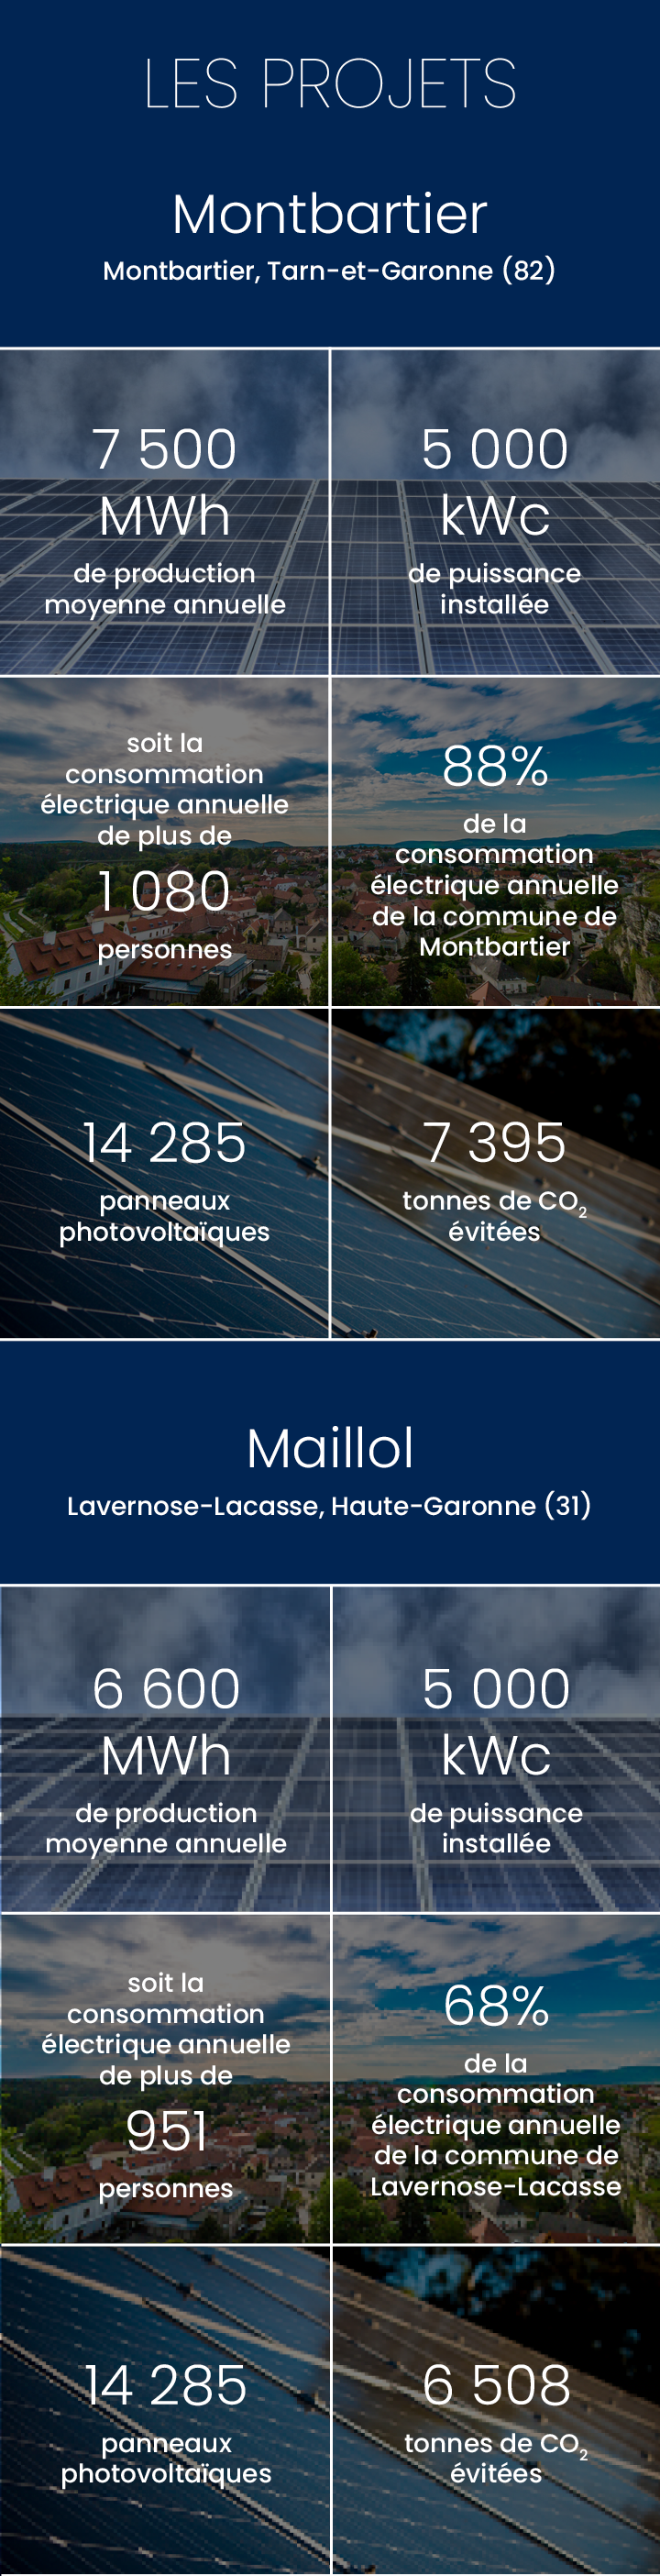 Production annuelle 20 737 000 kWh